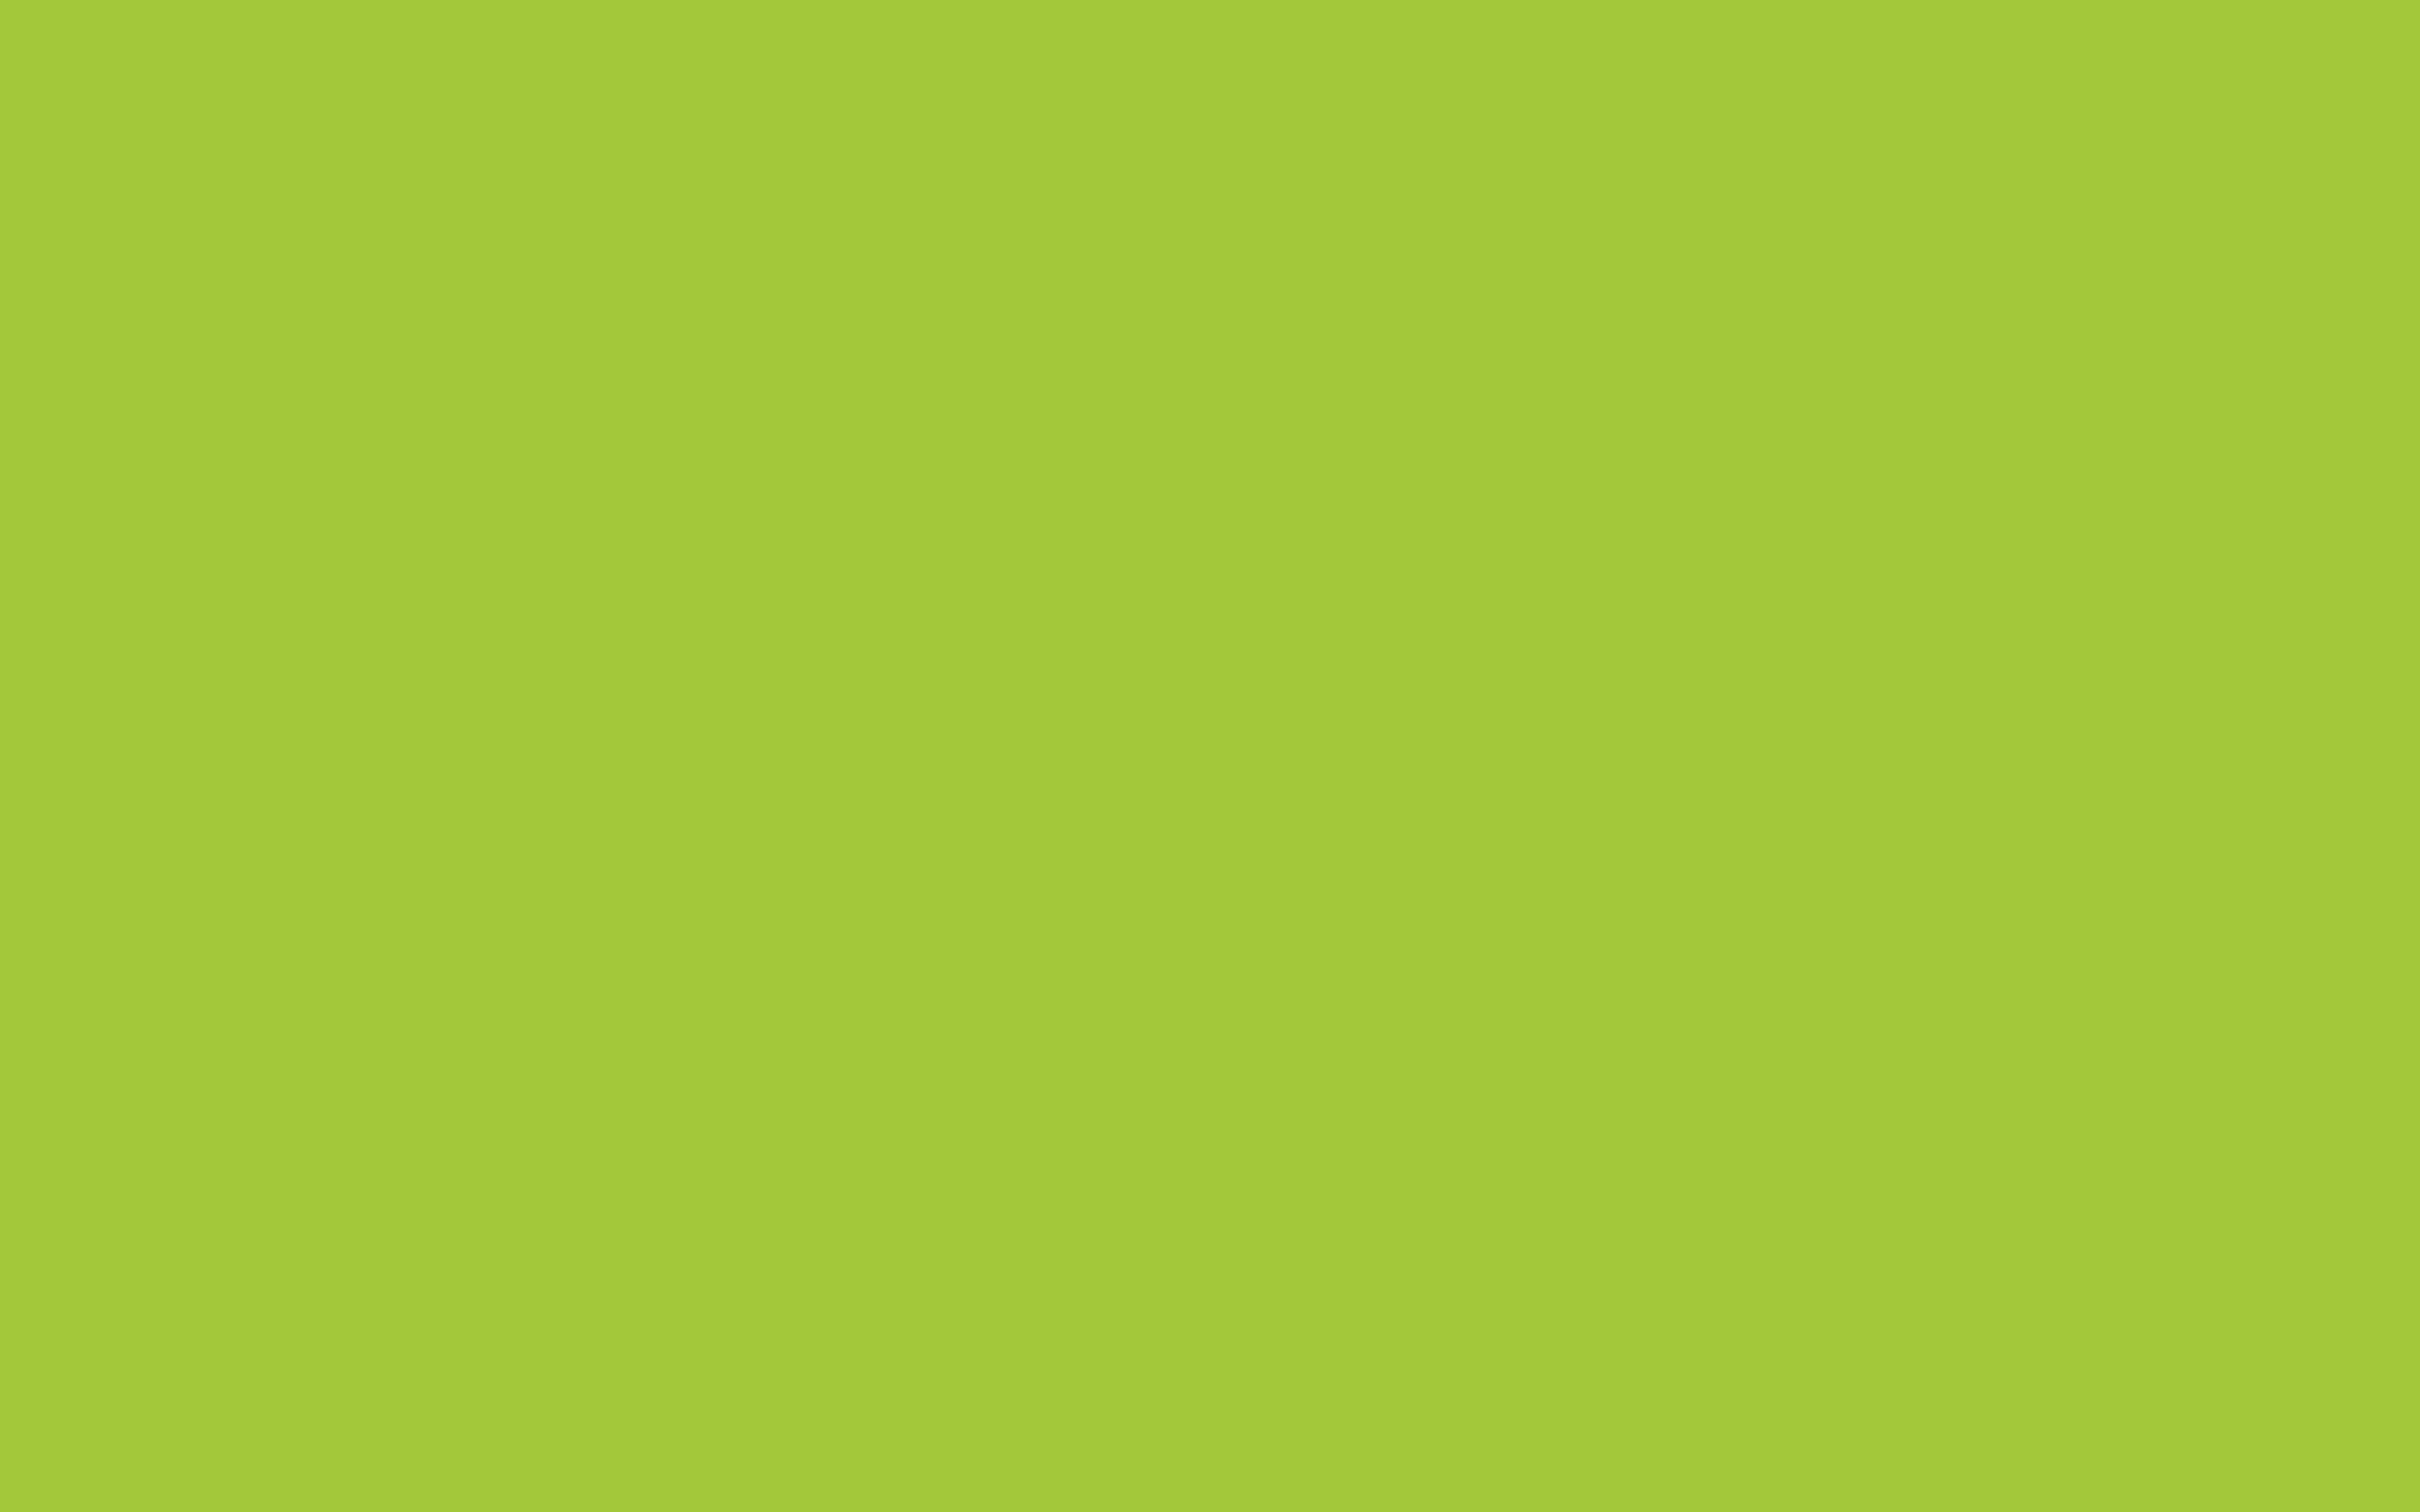 Android Solid Color Wallpaper